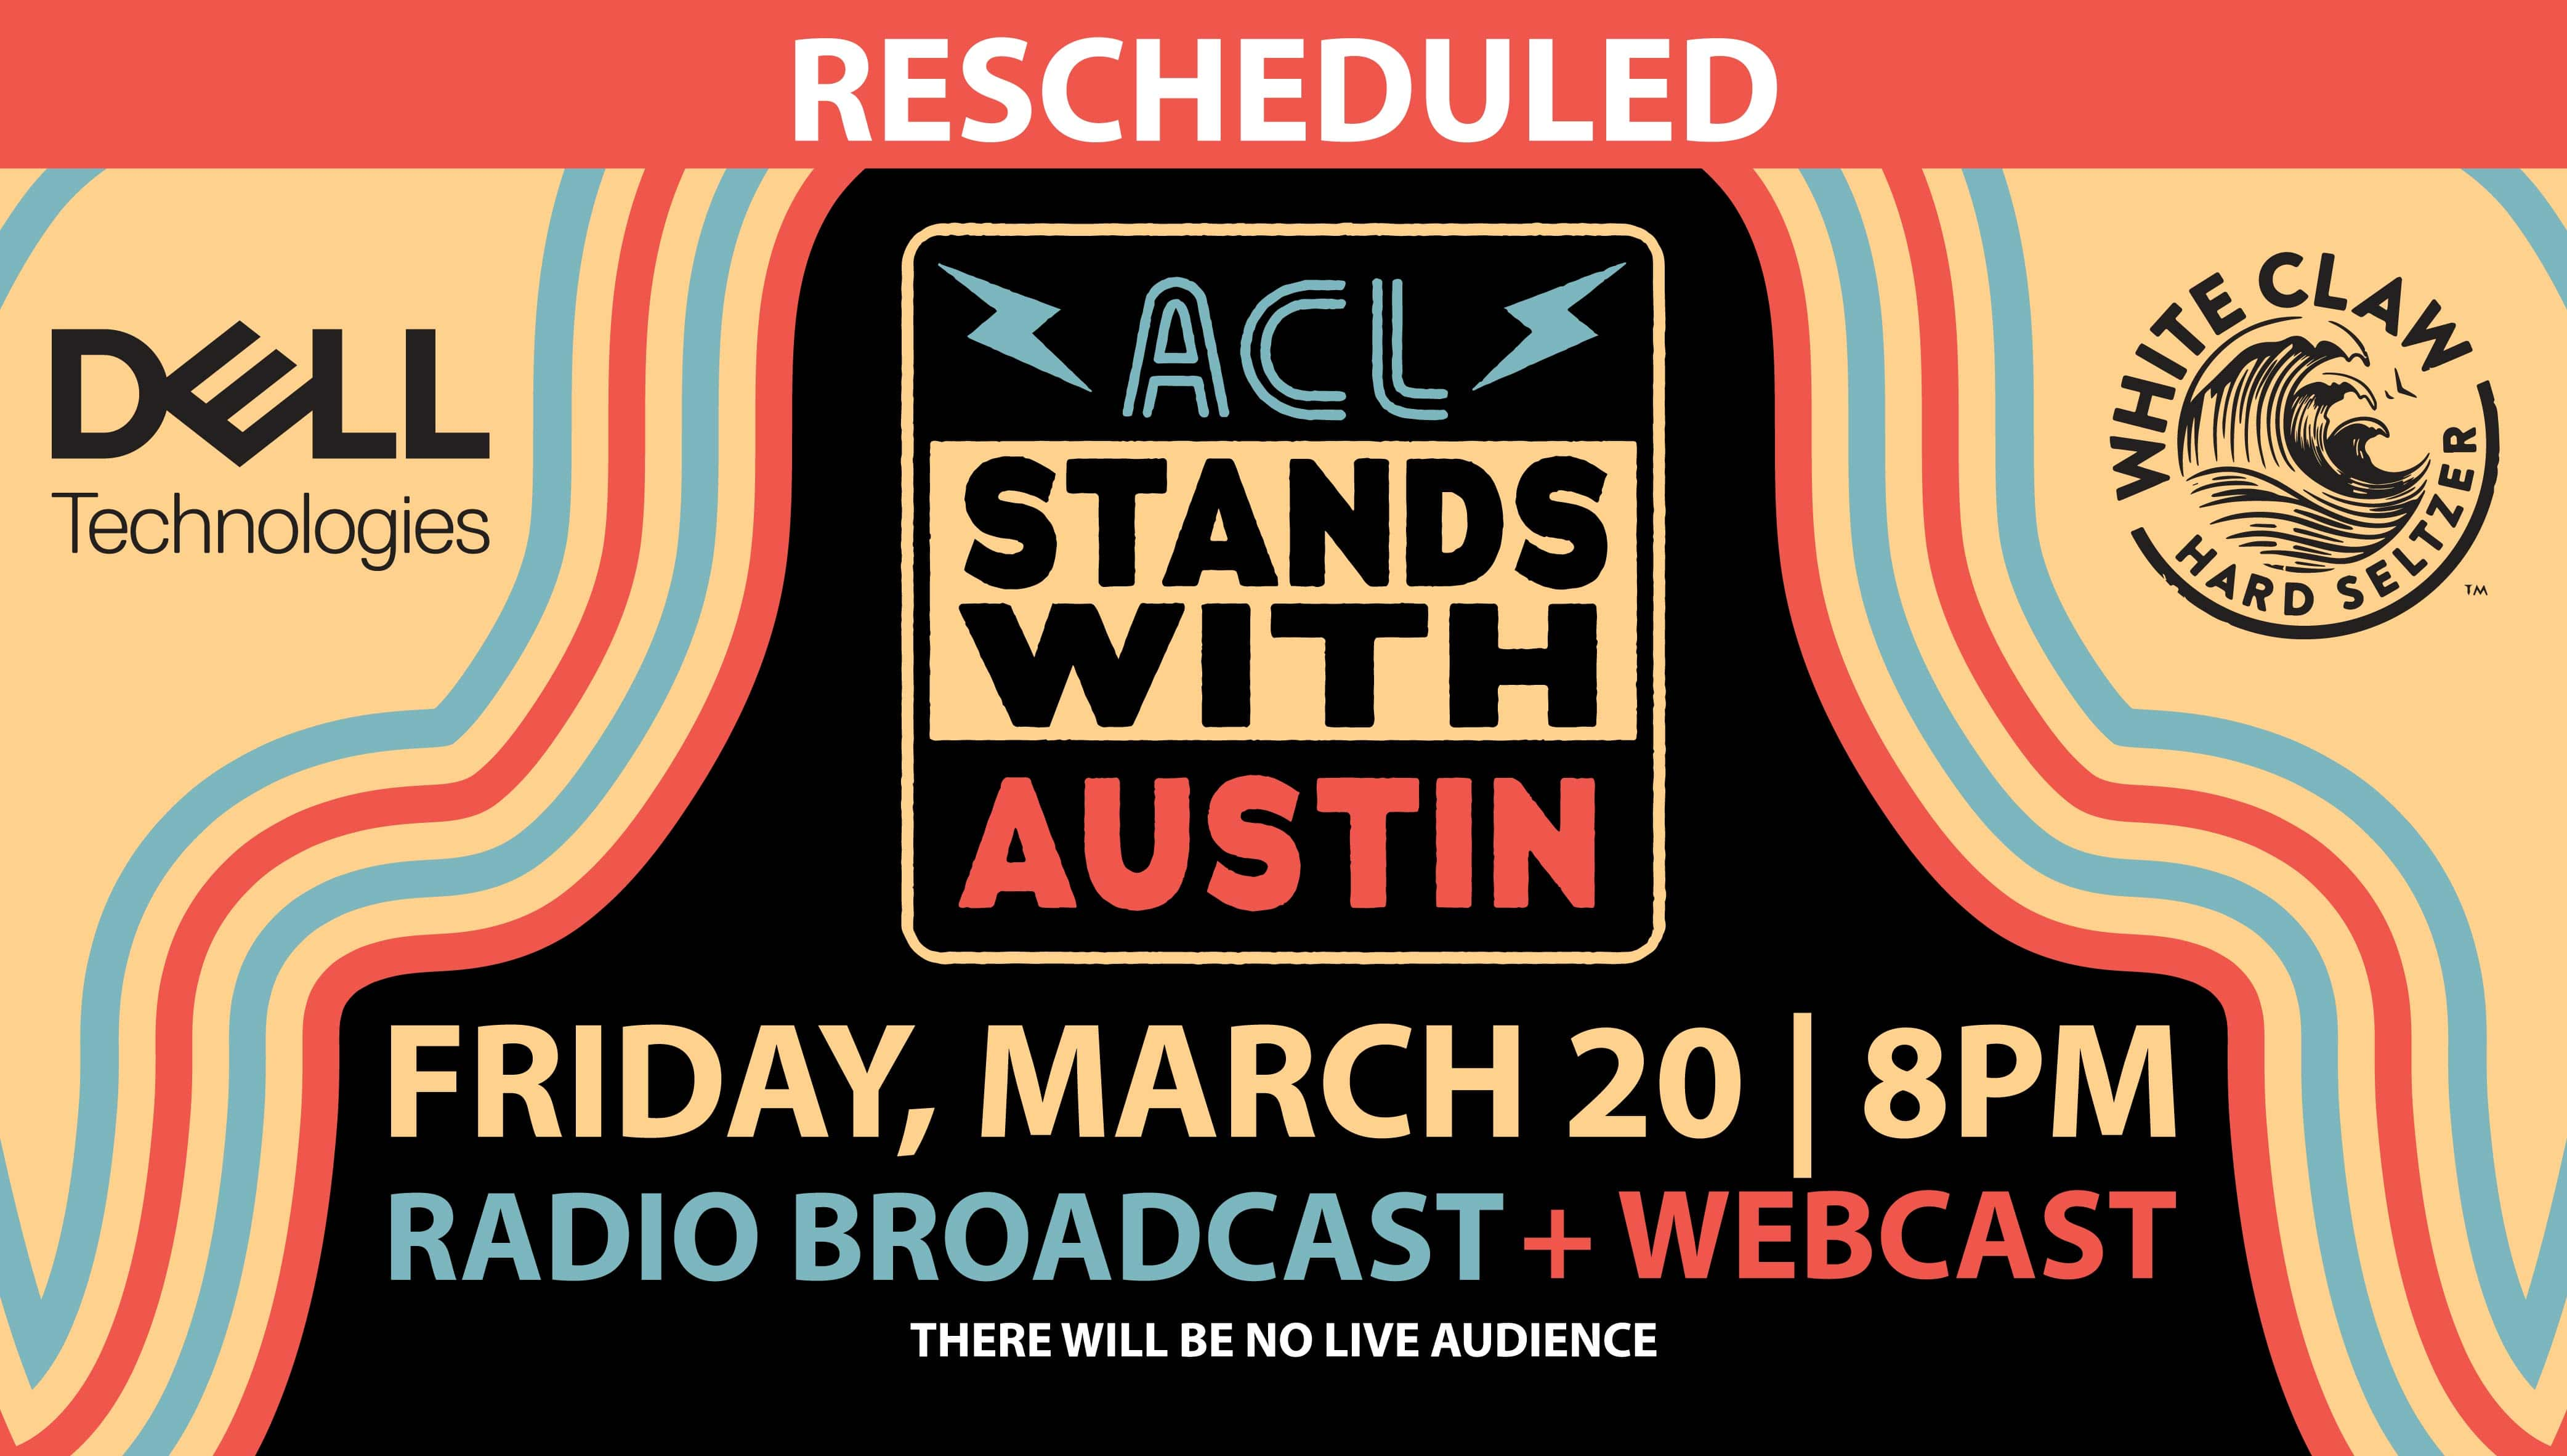 ACL Stands with Austin Friday, March 20th Radio Broadcast + Webcast Rescheduled